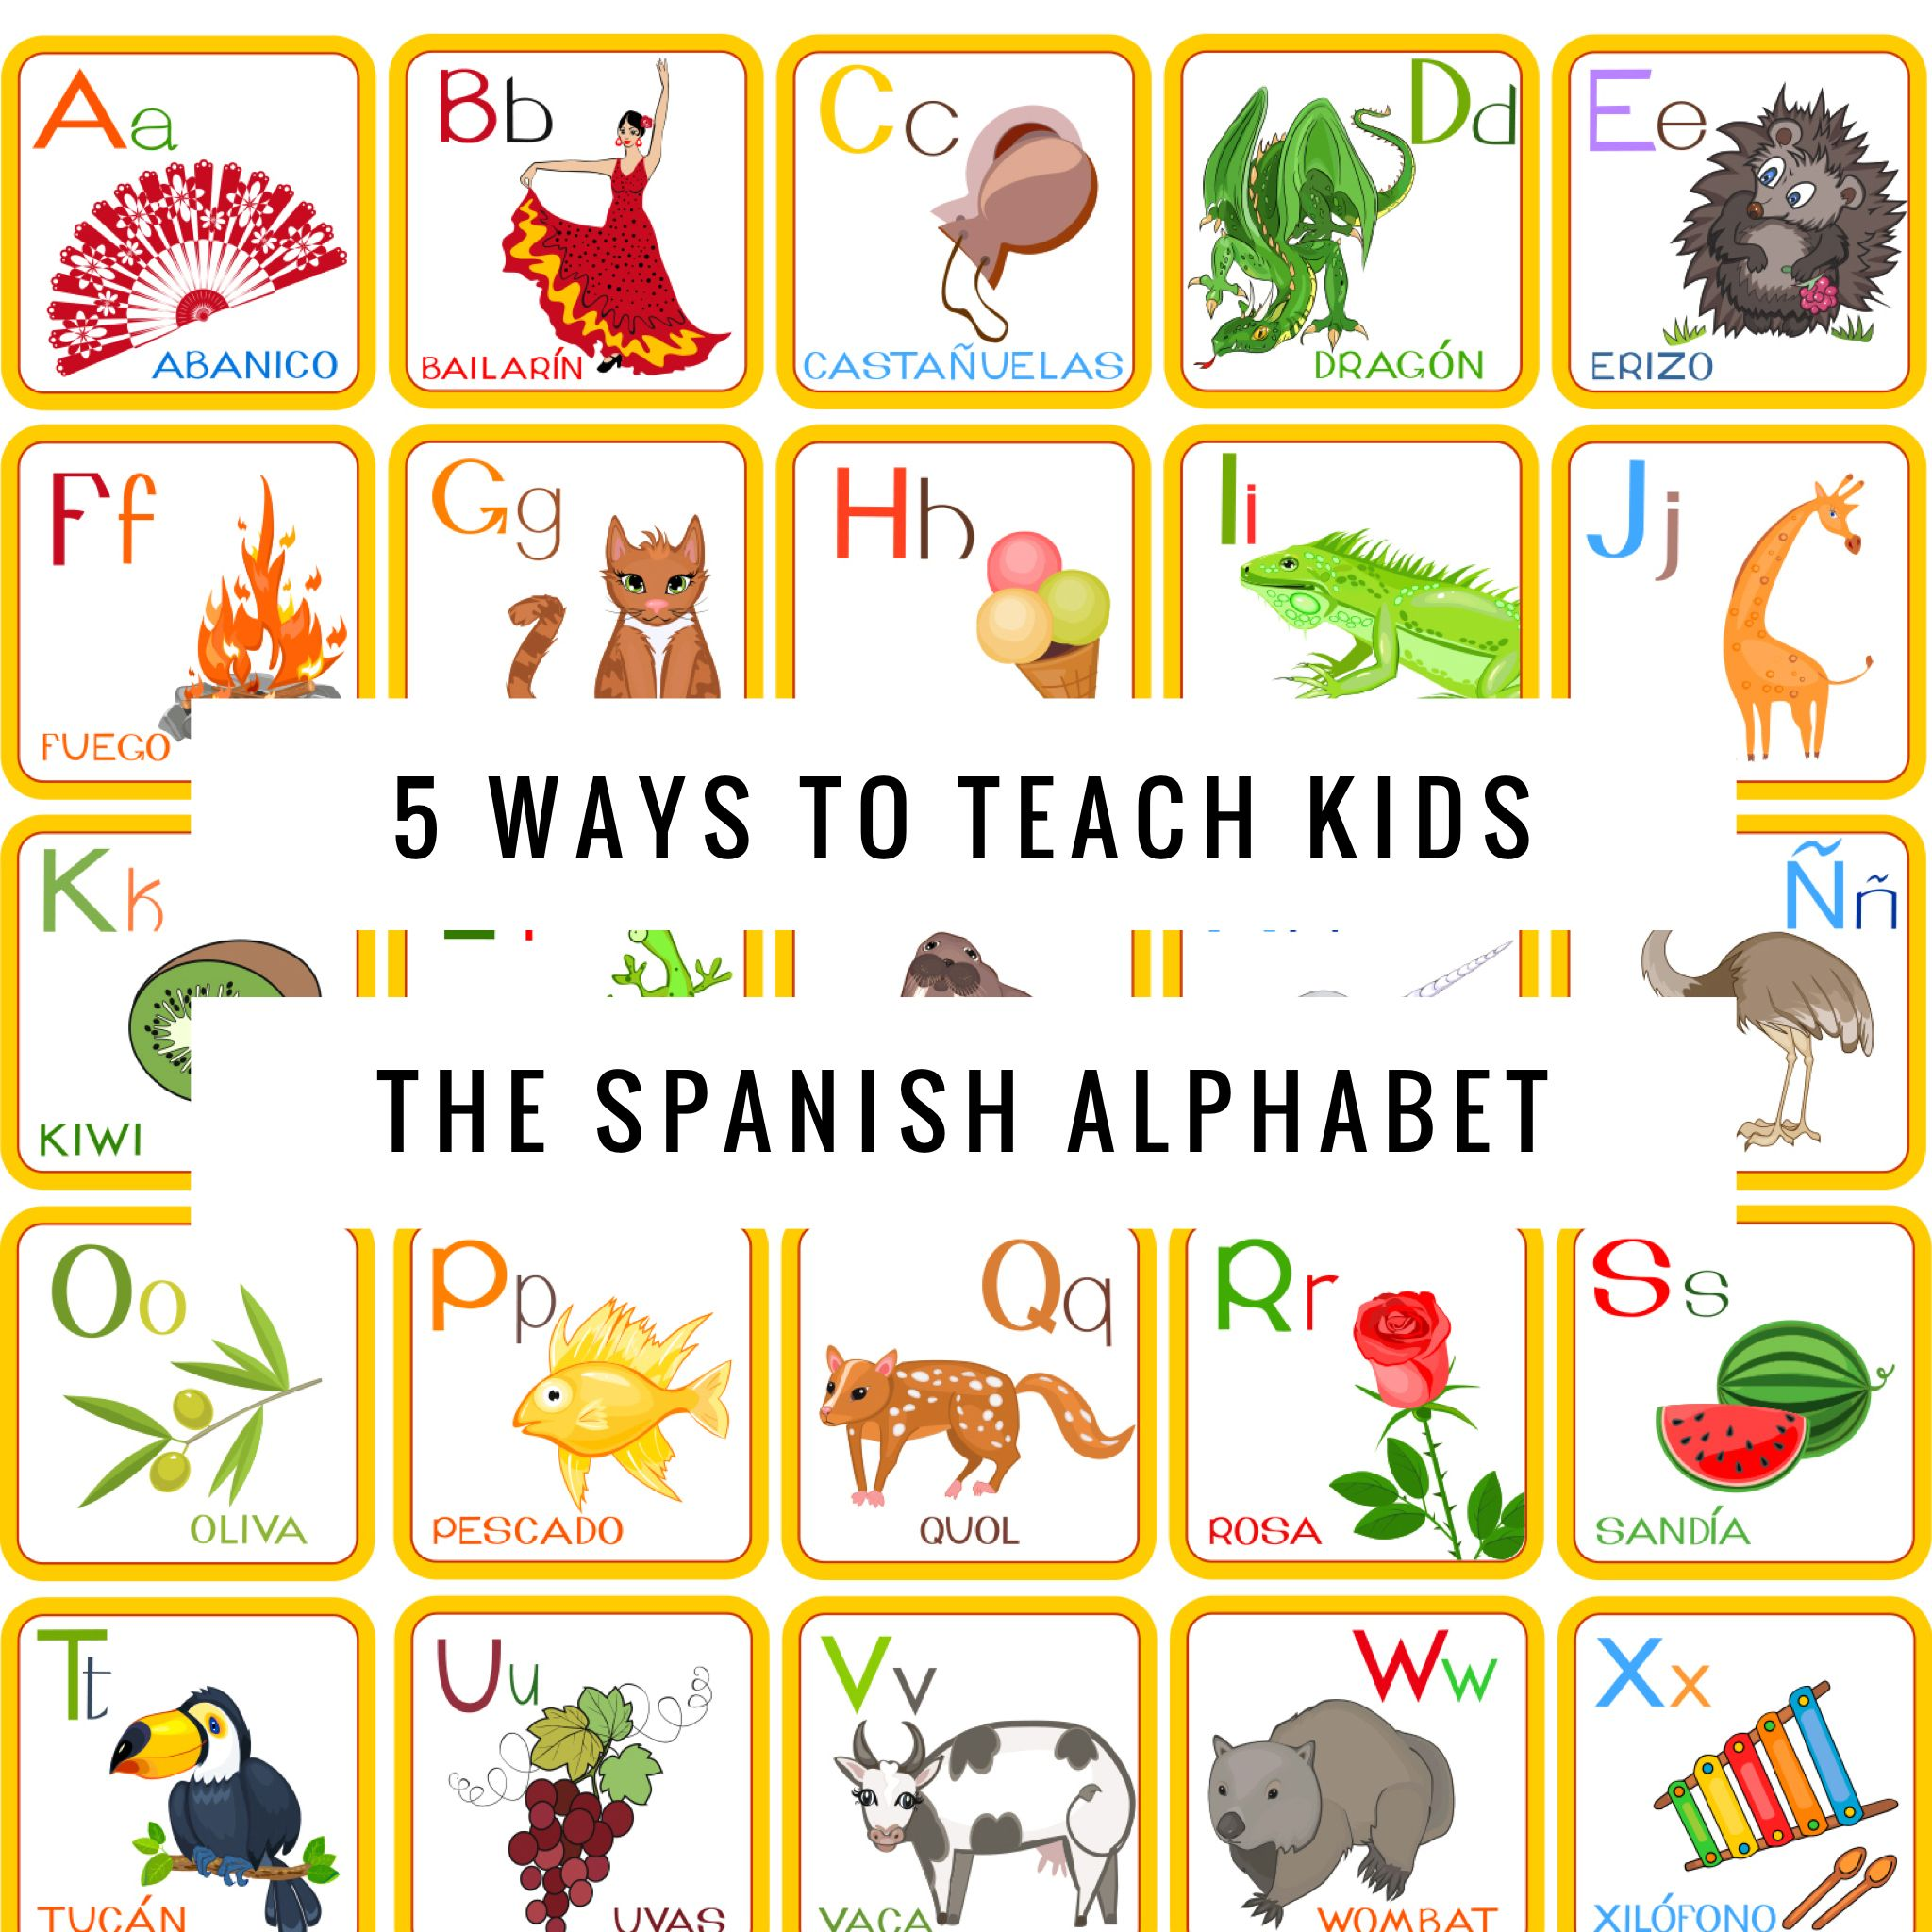 Looking for some fun easy ways to teach kids the Spanish Alphabet